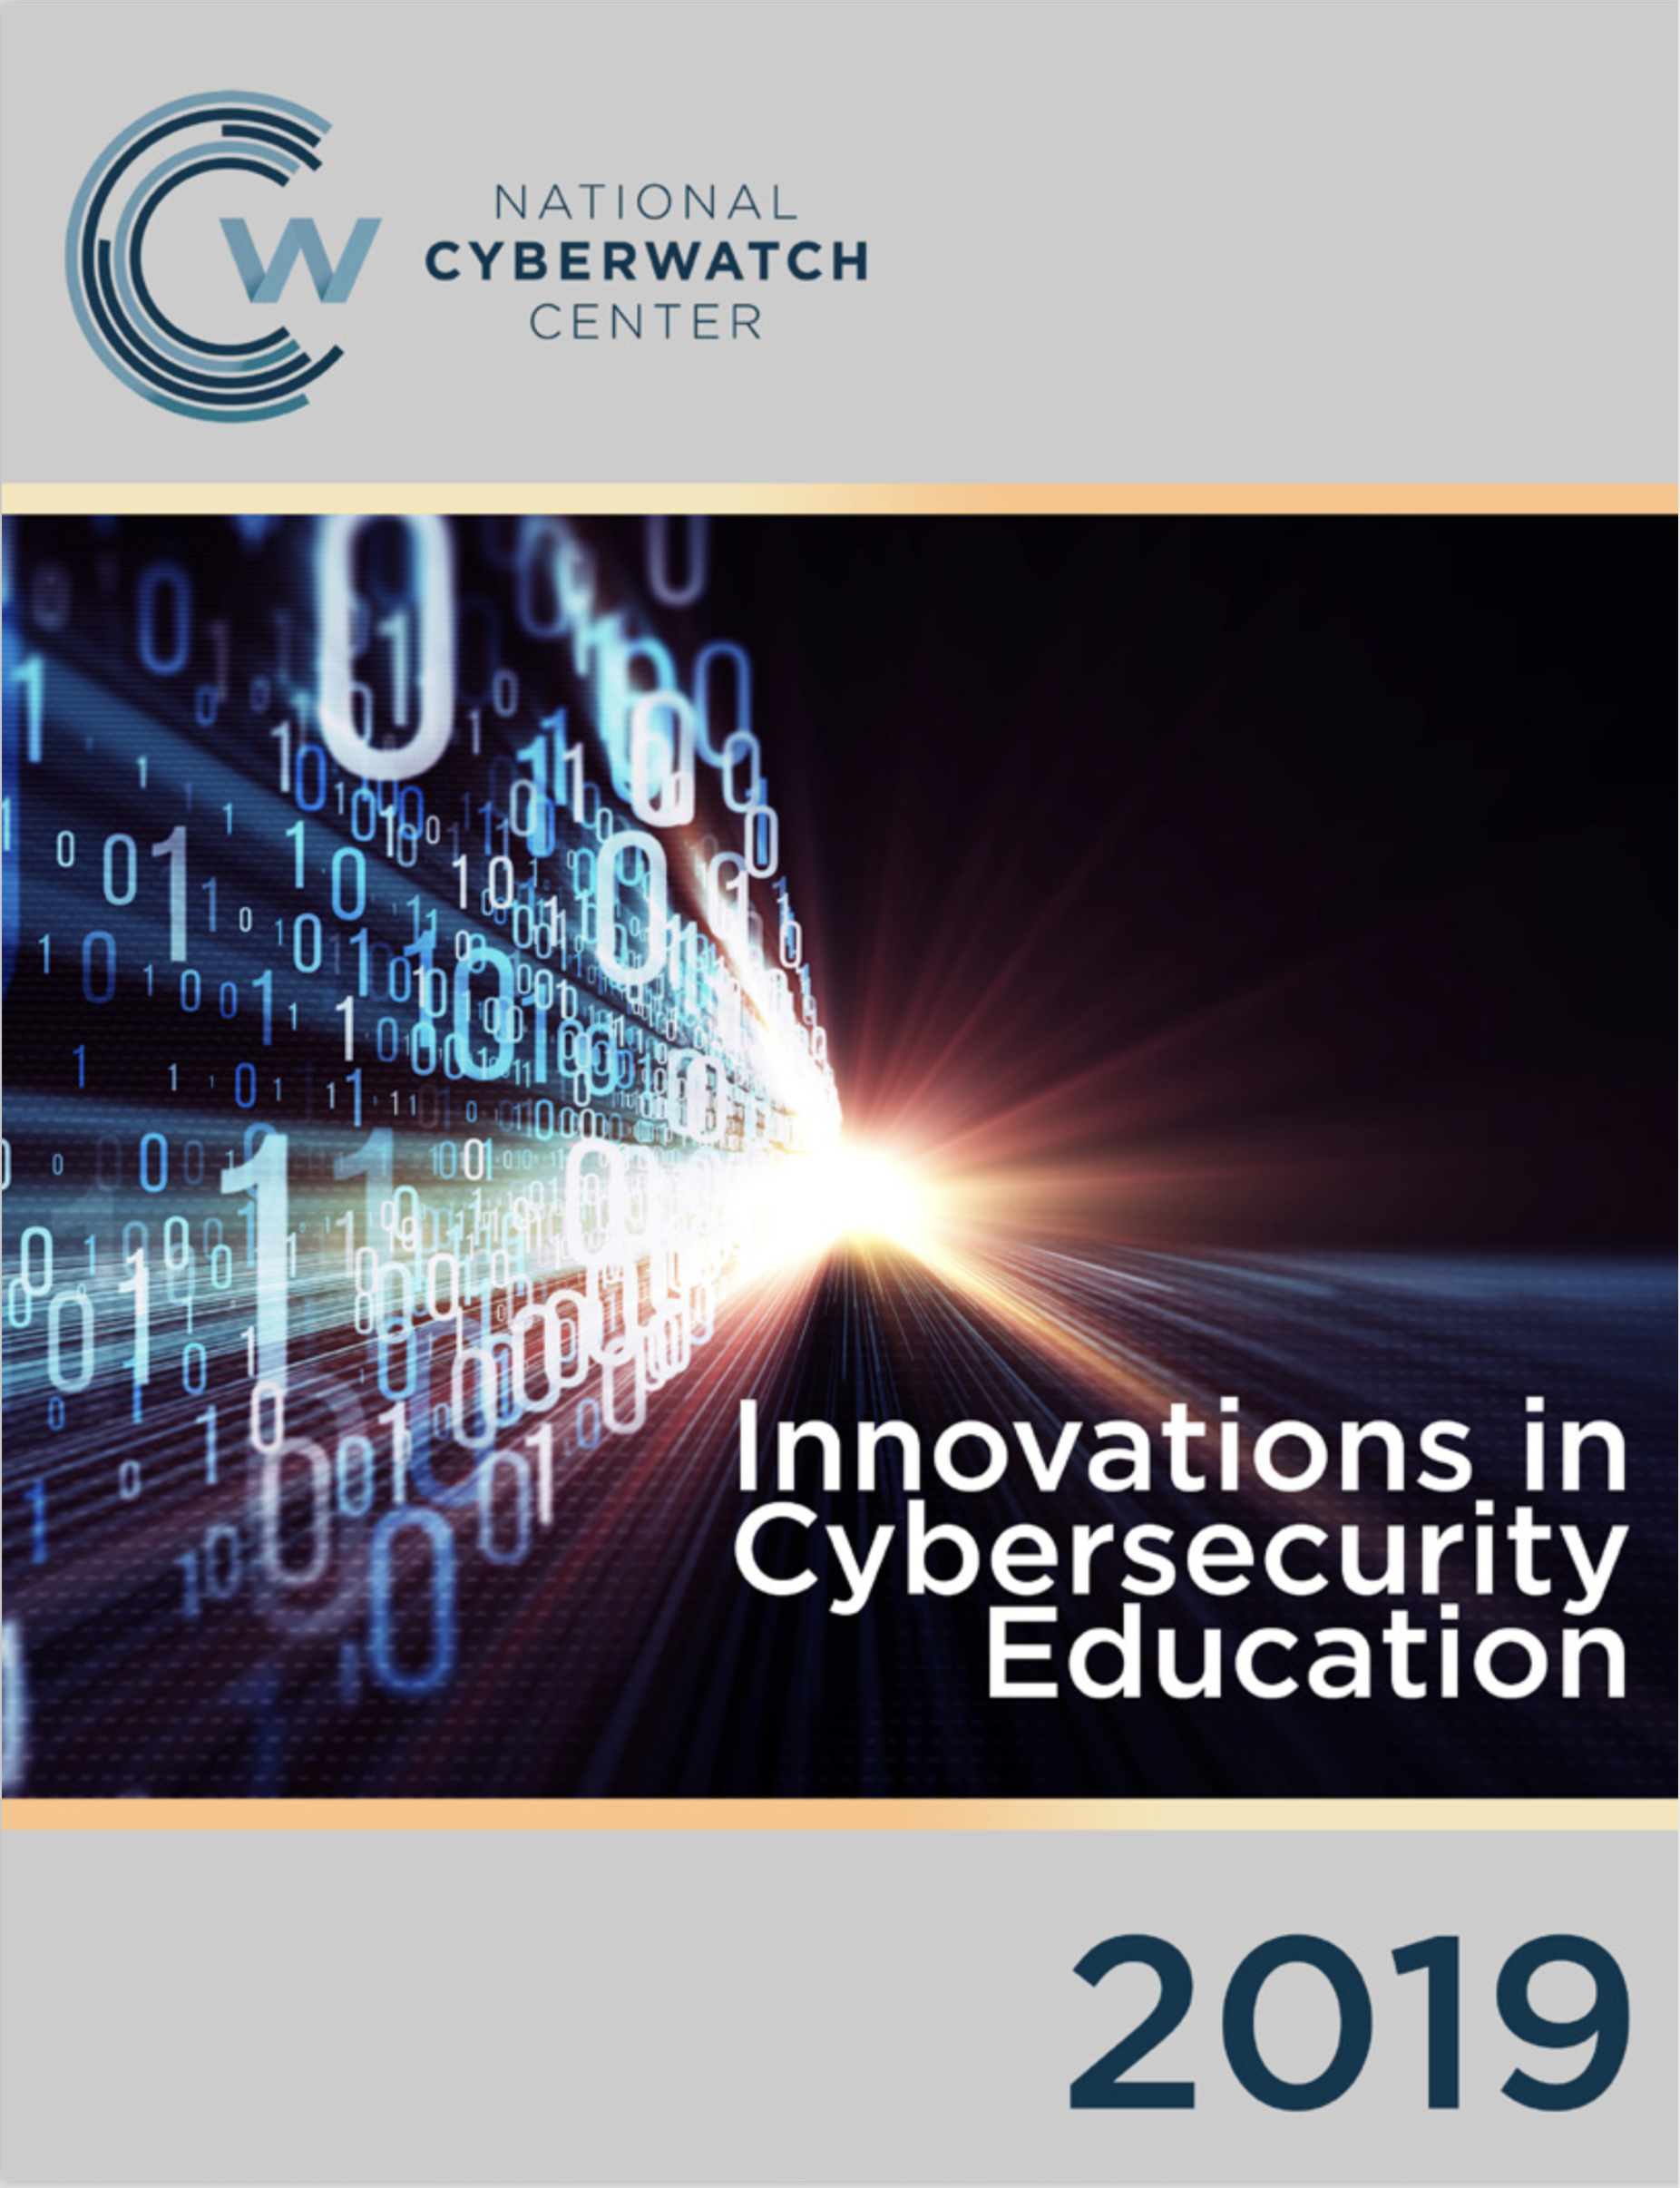 2019 Innovations in Cybersecurity Education